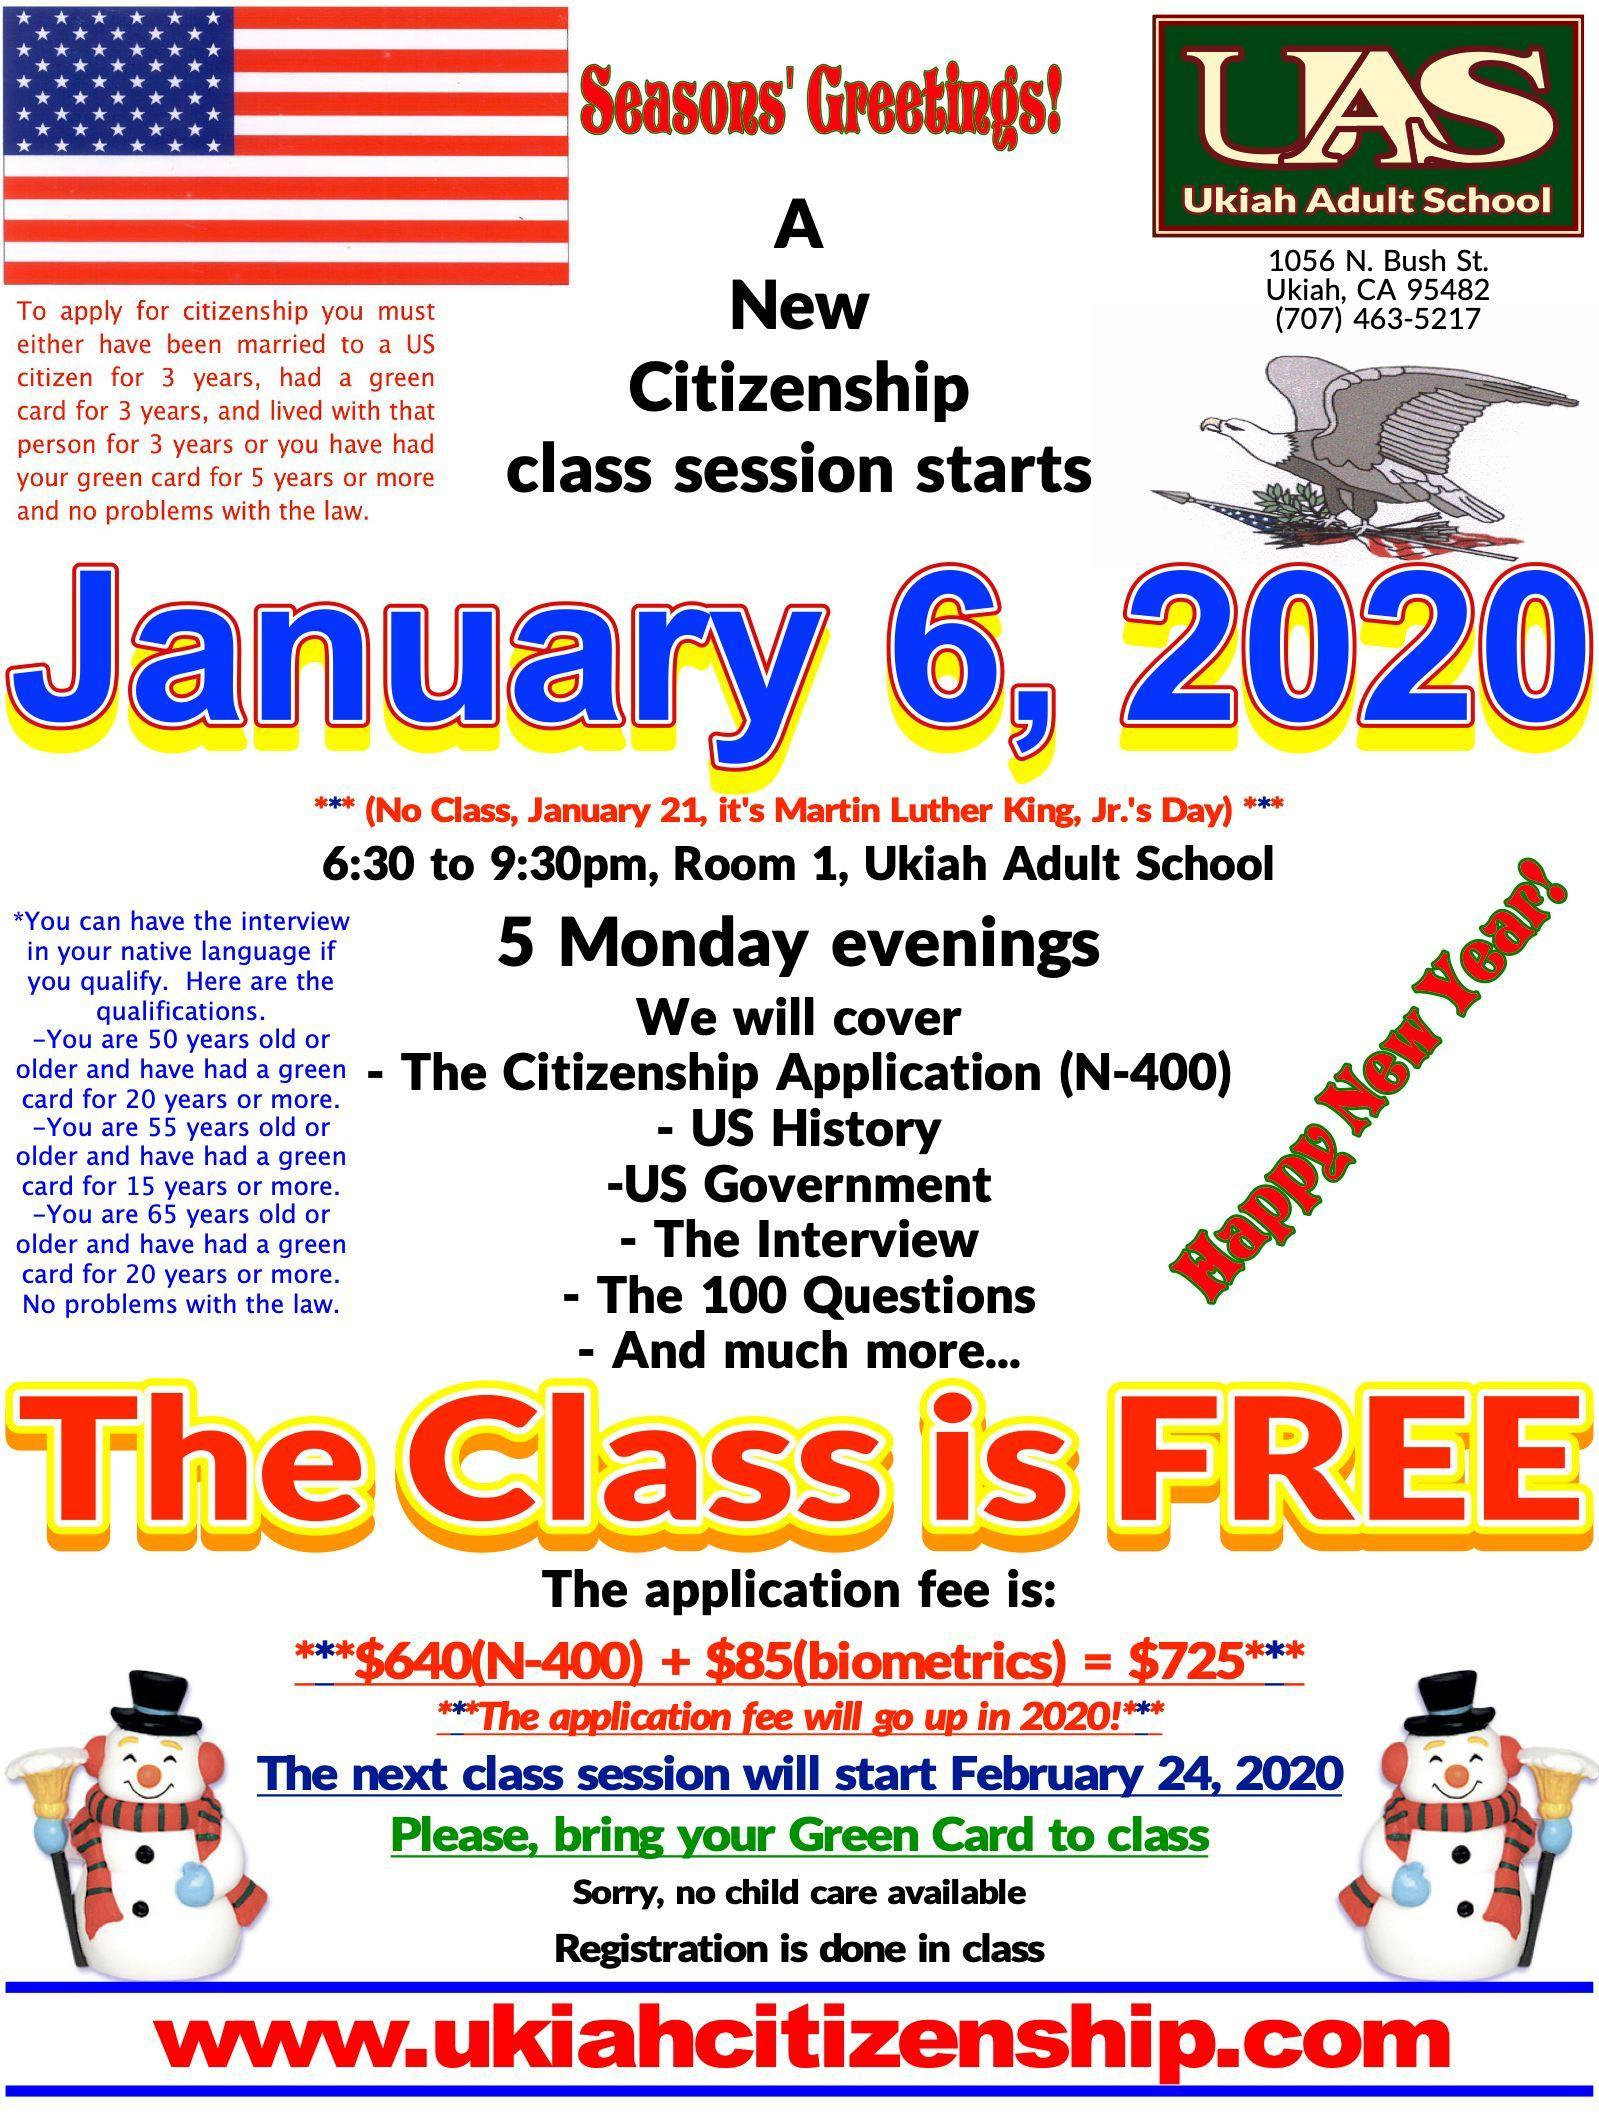 A new Citizenship class session starts January 6, 2020, 6:30pm to 9:30pm, Room 1 at Ukiah Adult School poster  The application fee will change in 2020.  The current fee is $640 for the application processing by USCIS and the biometrics processing fee is $85.  The fee may go up to $1170 for the application processing.  The biometrics stays the same.  The date of the implementation of the fee increas is unknown at this time.